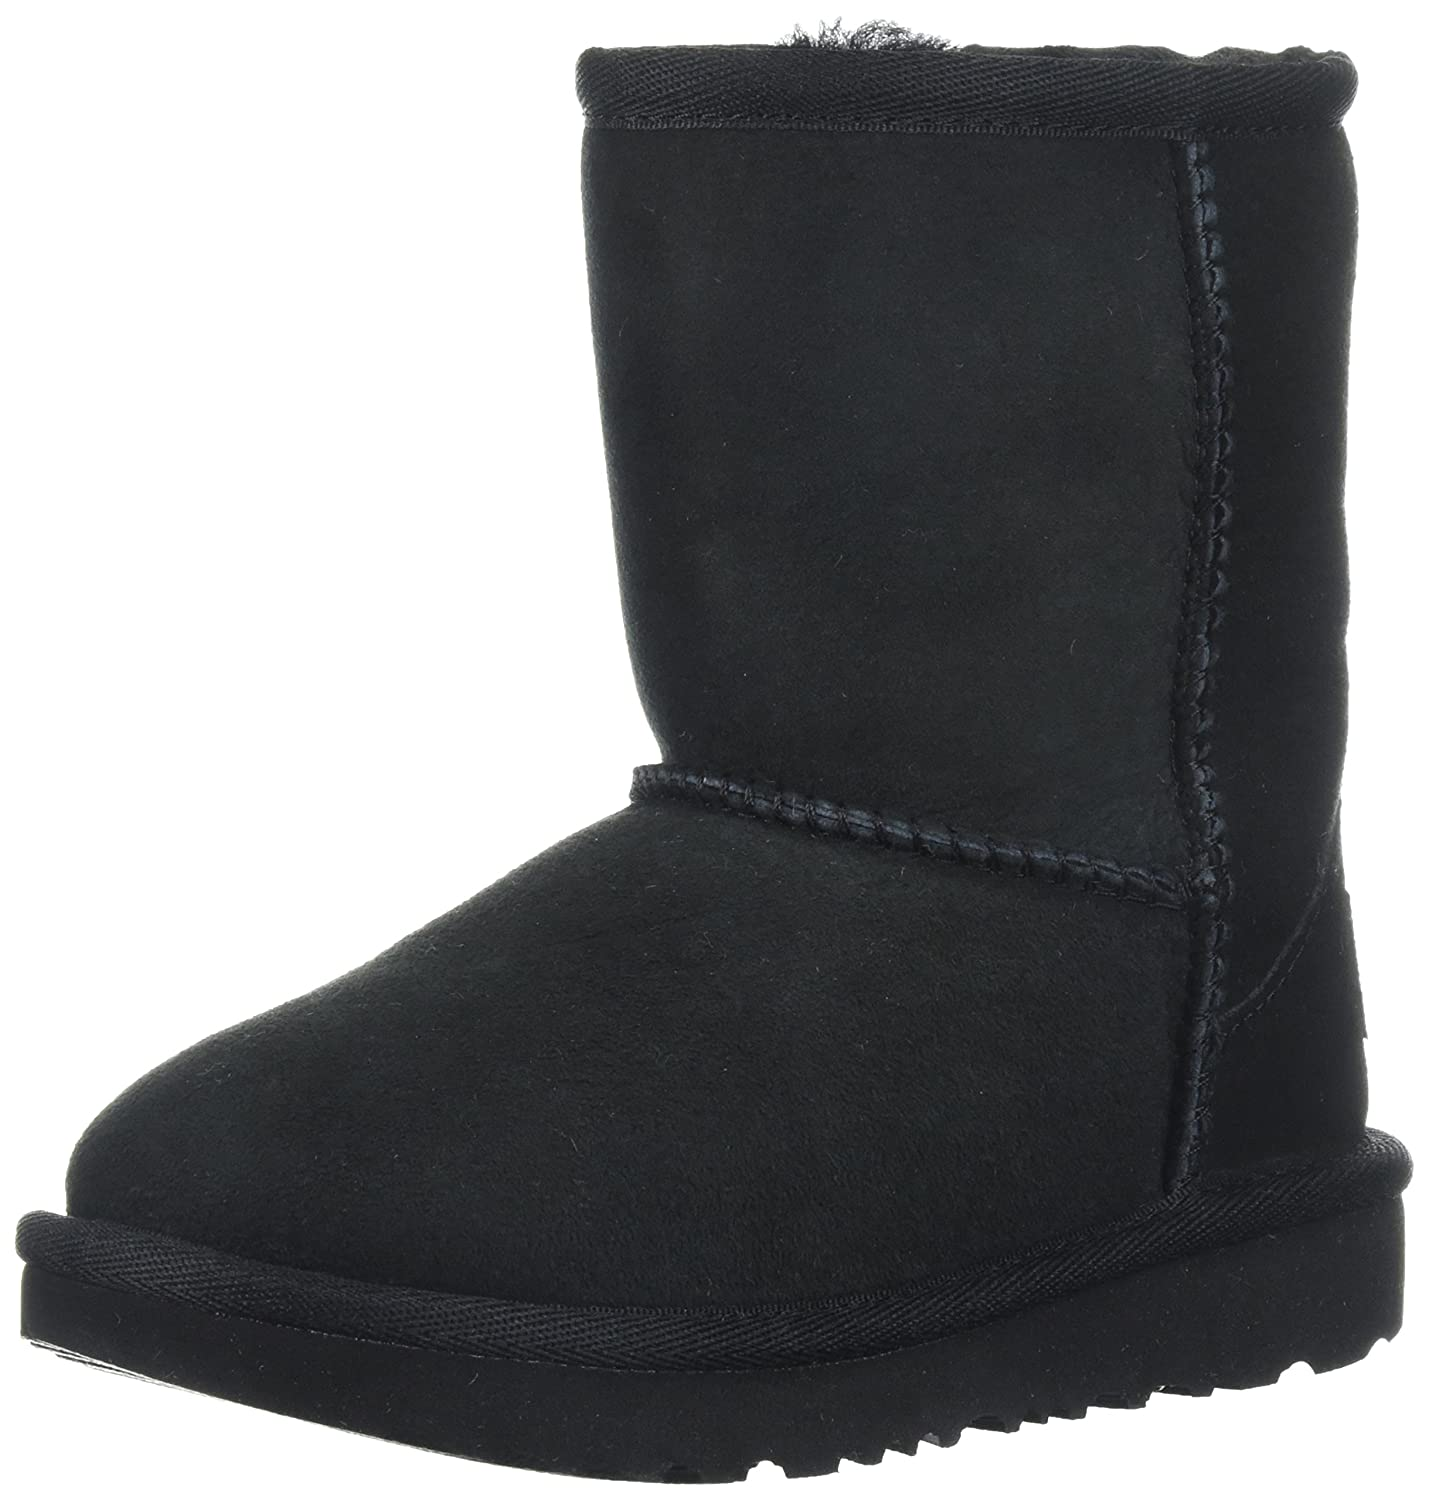 0c2b0a11e69 UGG Kids K Classic II Fashion Boot